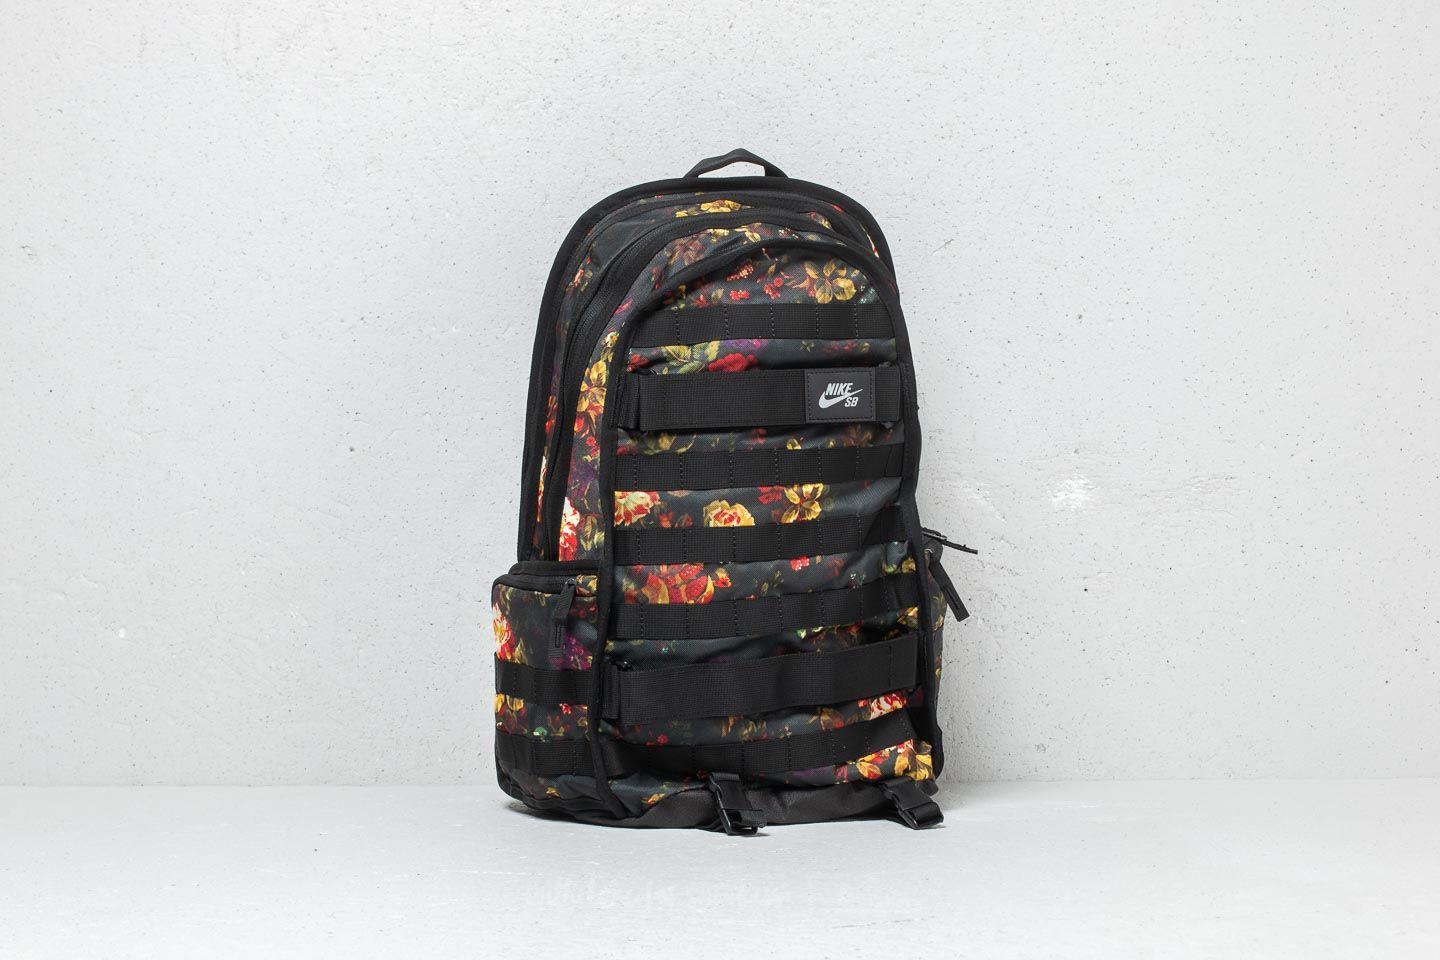 826b75f5b3bc Lyst - Nike Sb Rpm Graphic Backpack Floral  Black  Black in Black